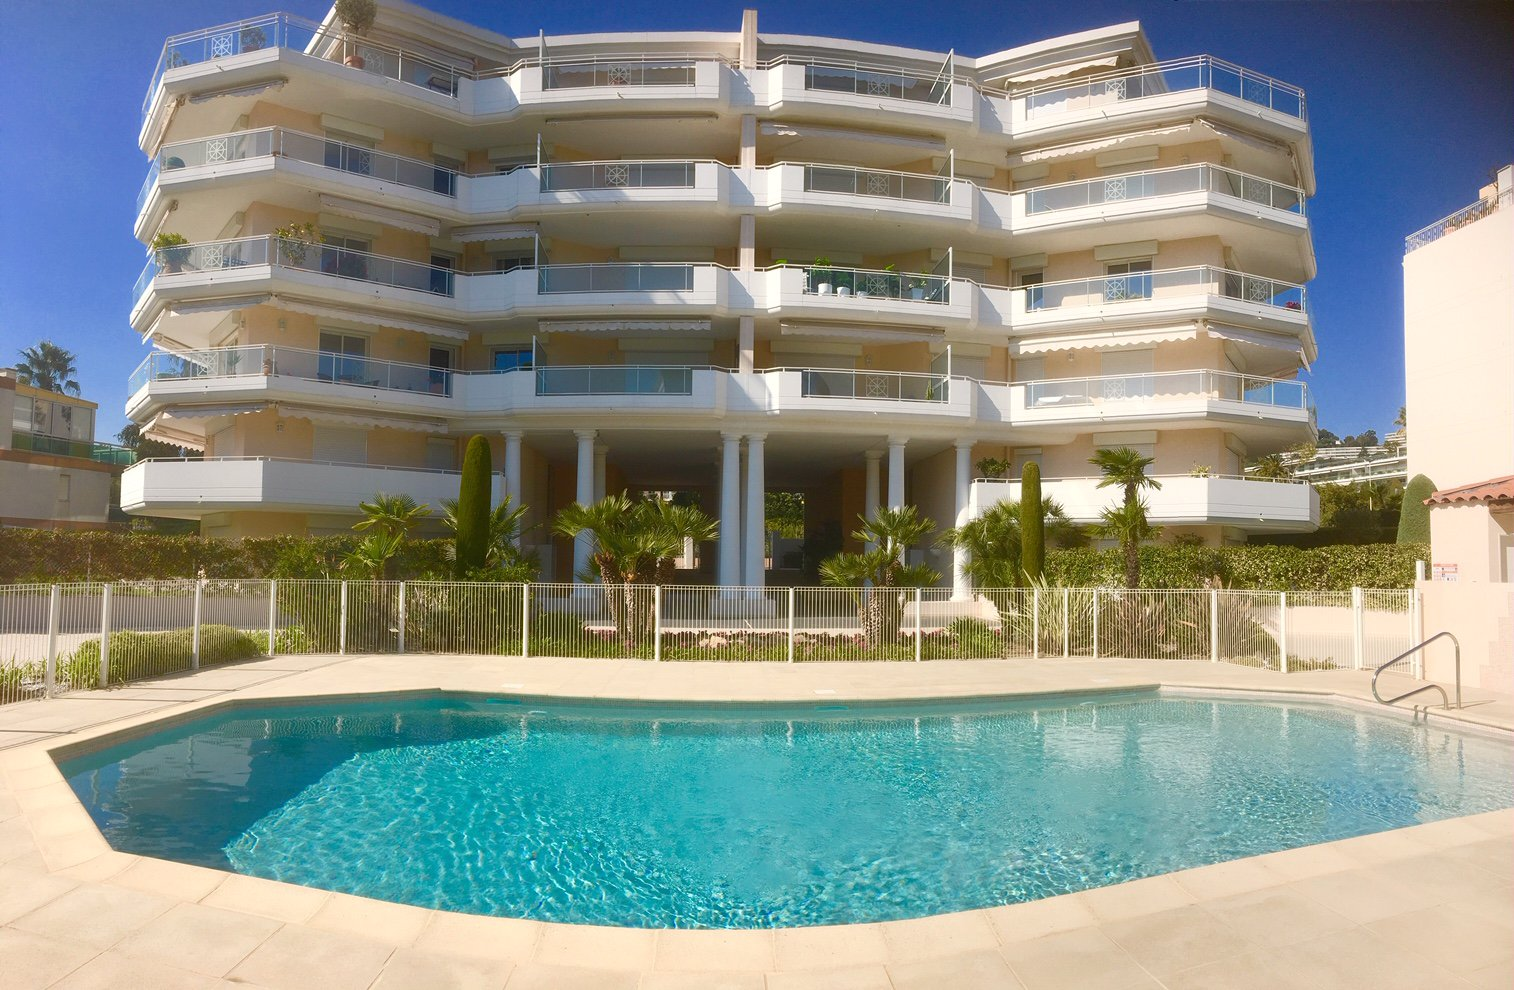 CANNES PALM BEACH - TWO BEDROOM APPARTMENT IN A LUXURIOUS RESIDENCE WITH SWIMMING POOL